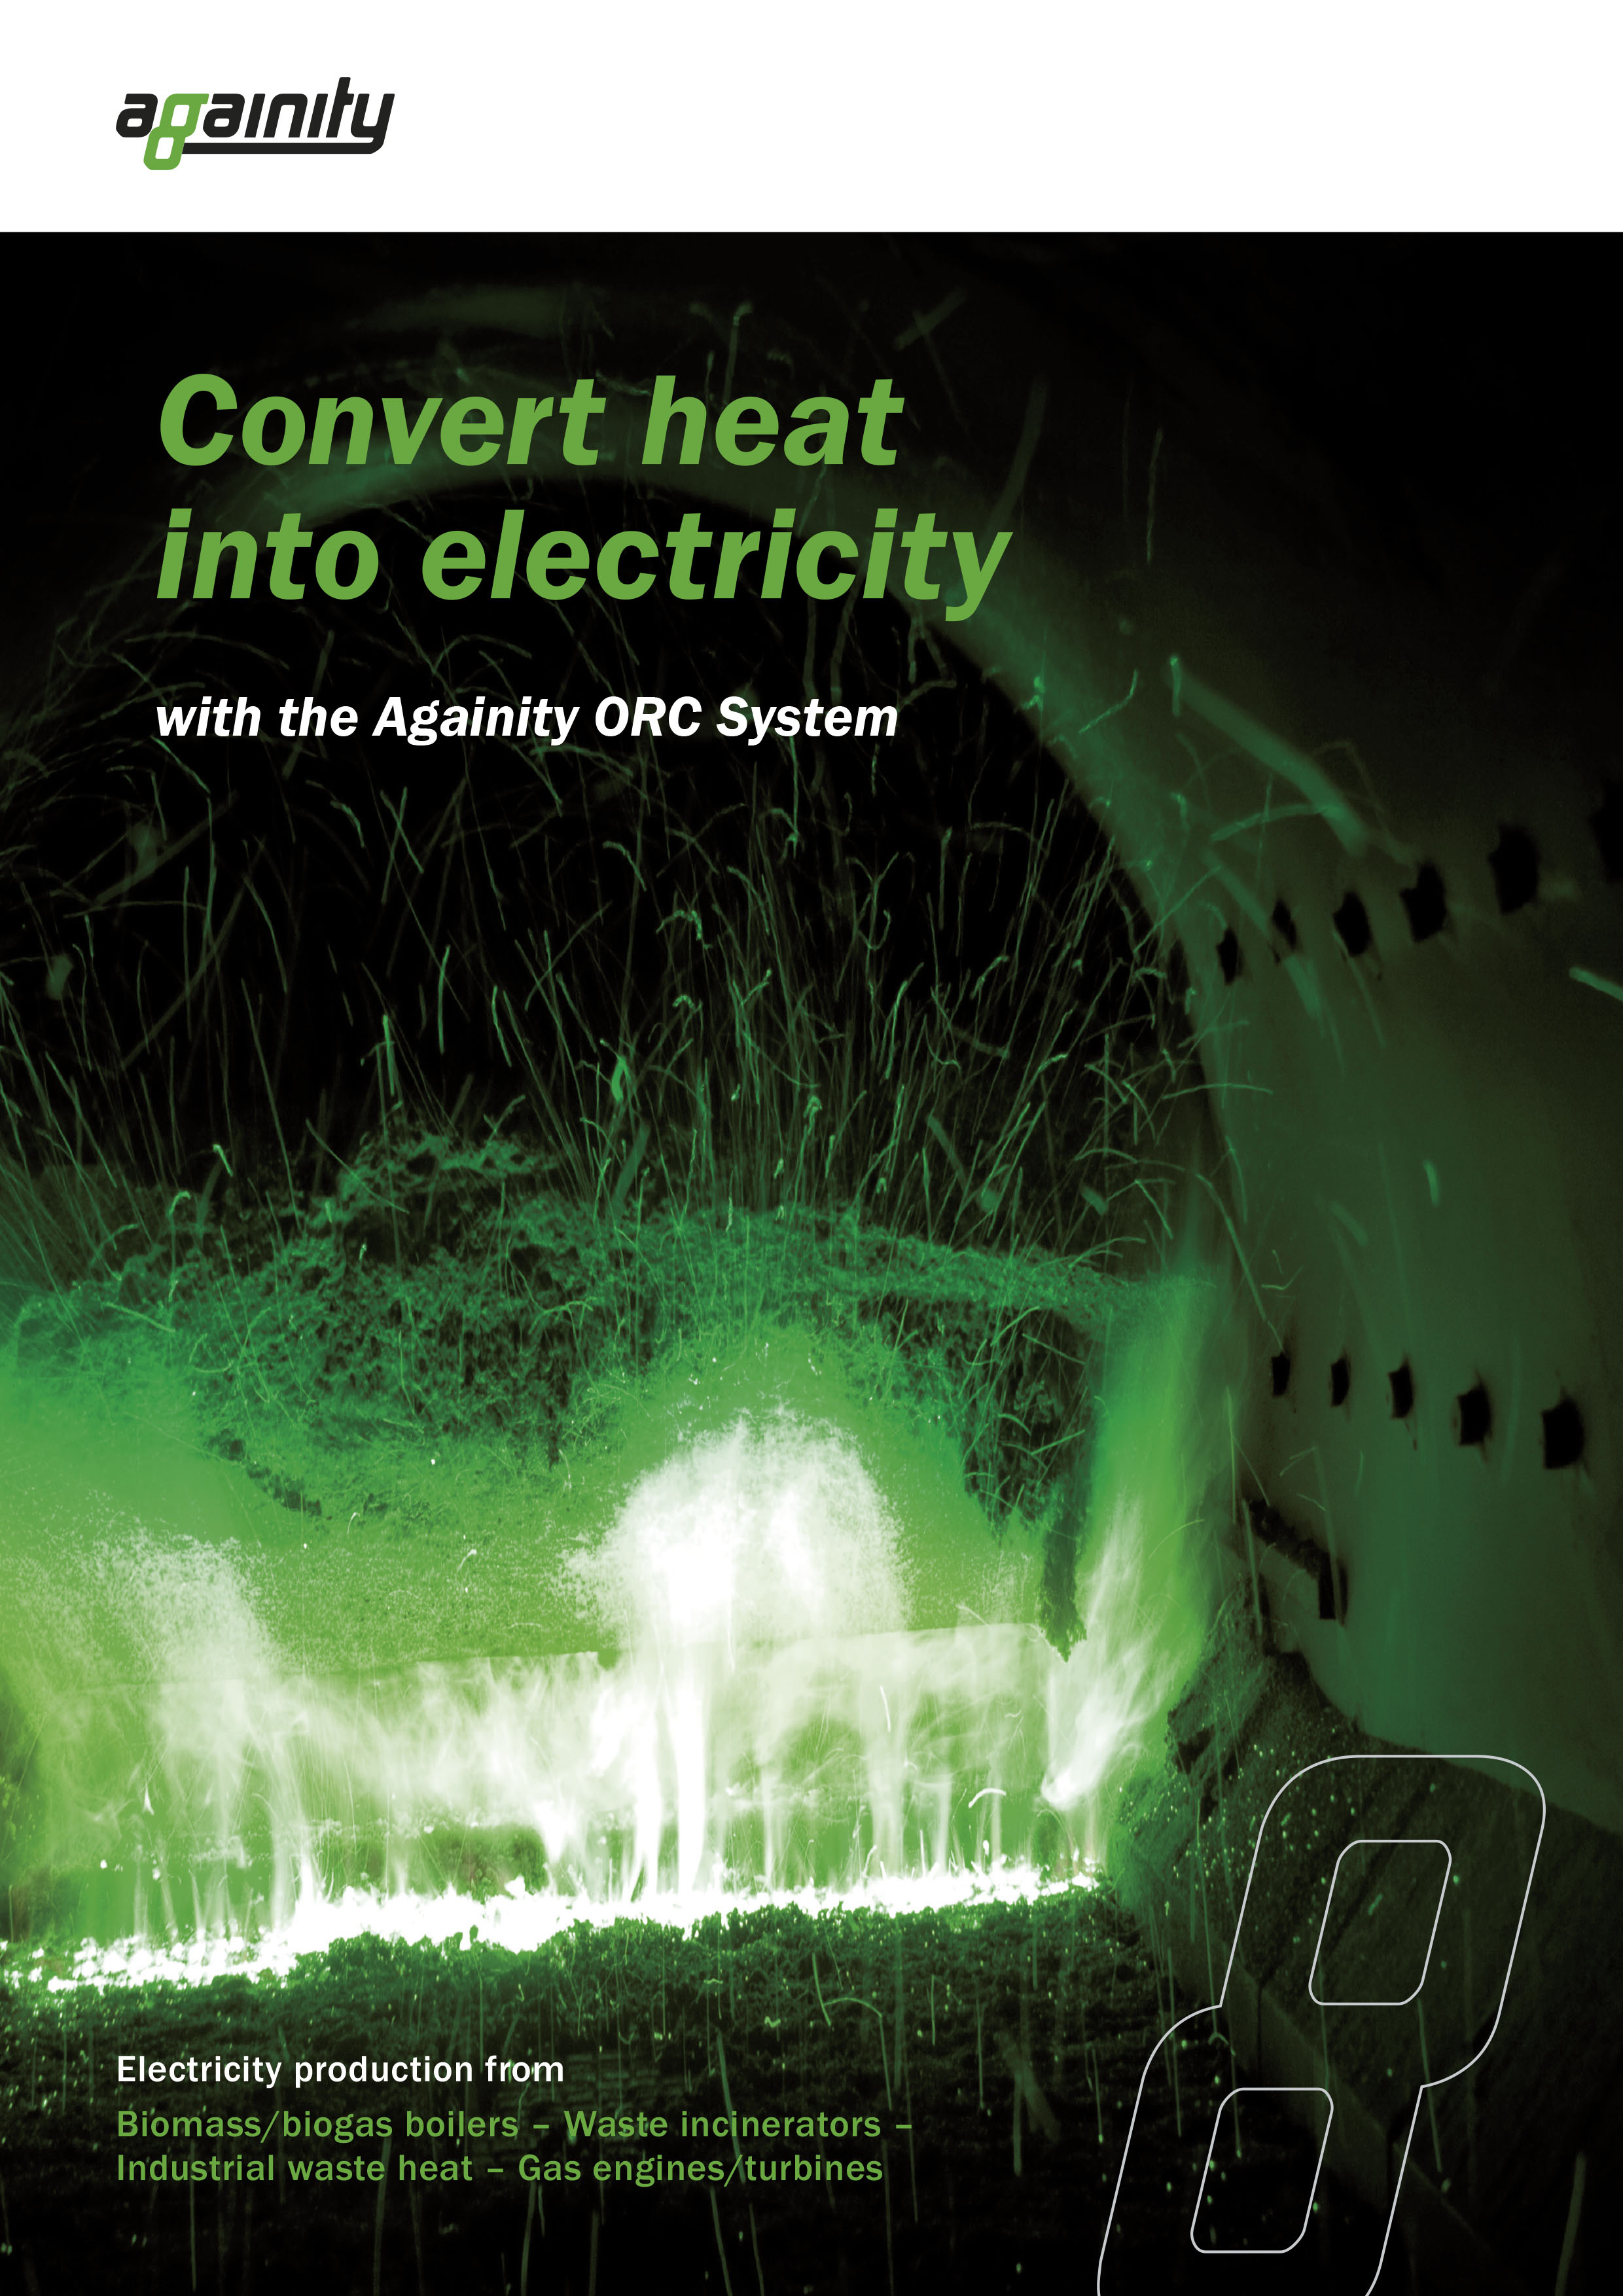 againity_bro_A005_EN_heat_to_electricity_171004_uppdaterad.indd